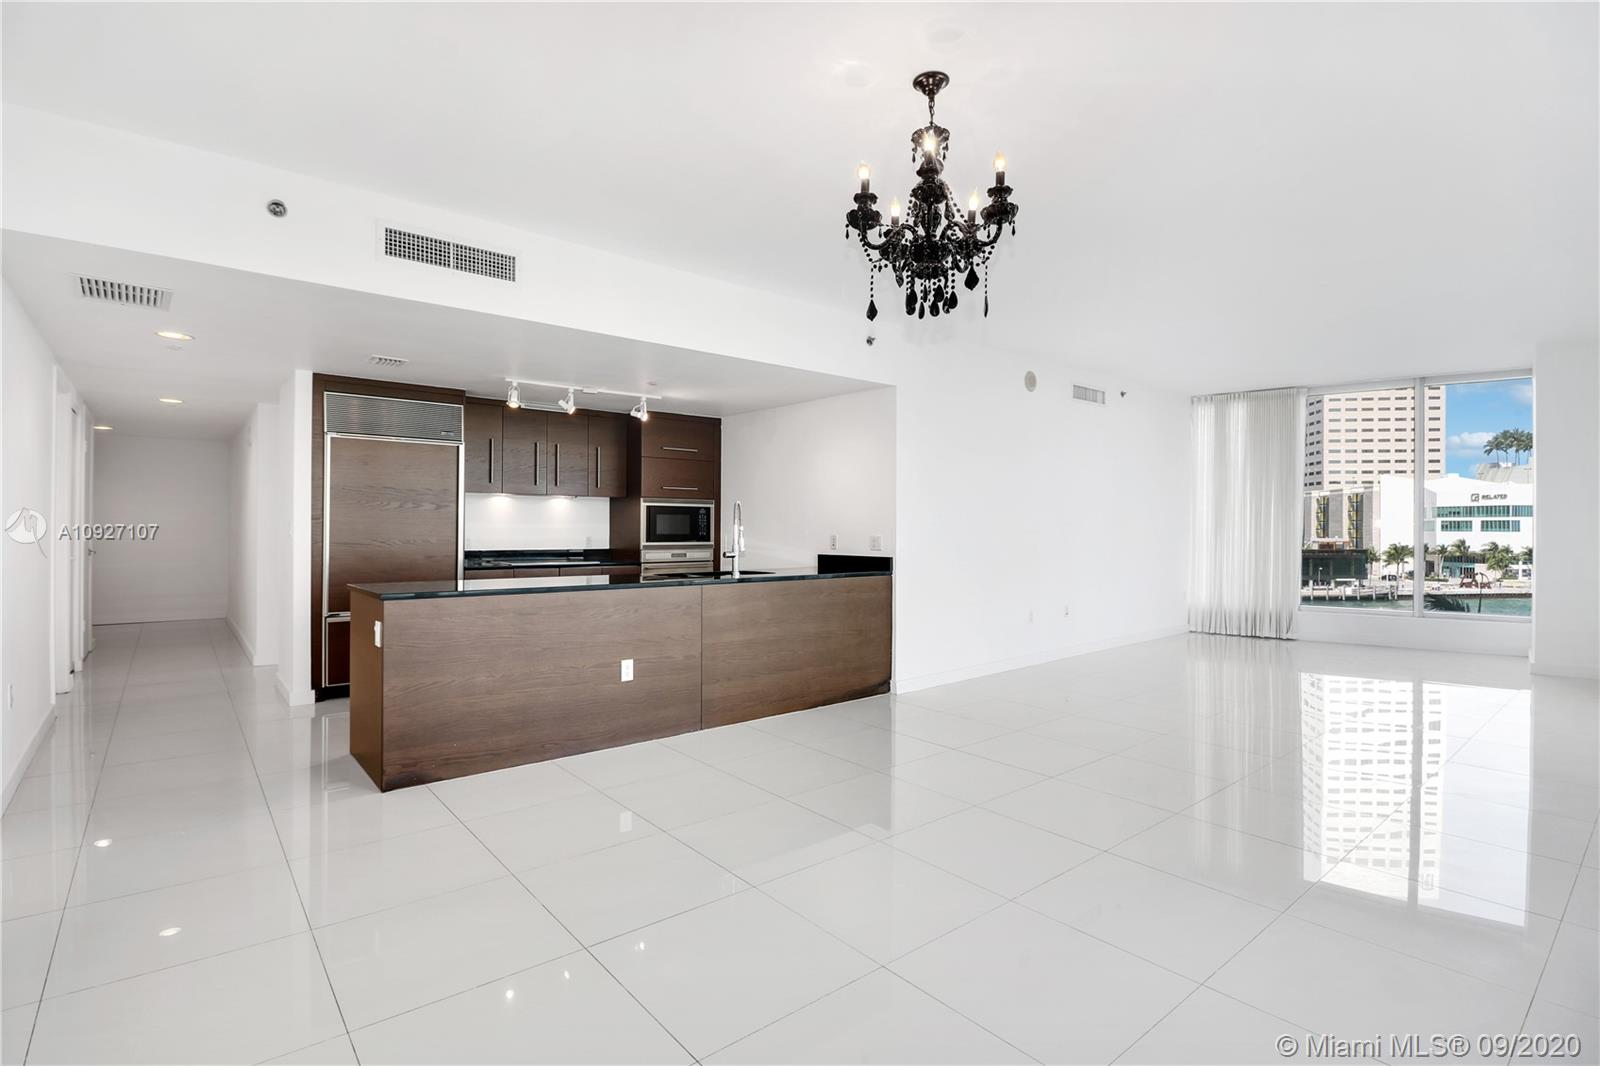 Icon Brickell 1 #401 - 465 Brickell Ave #401, Miami, FL 33131